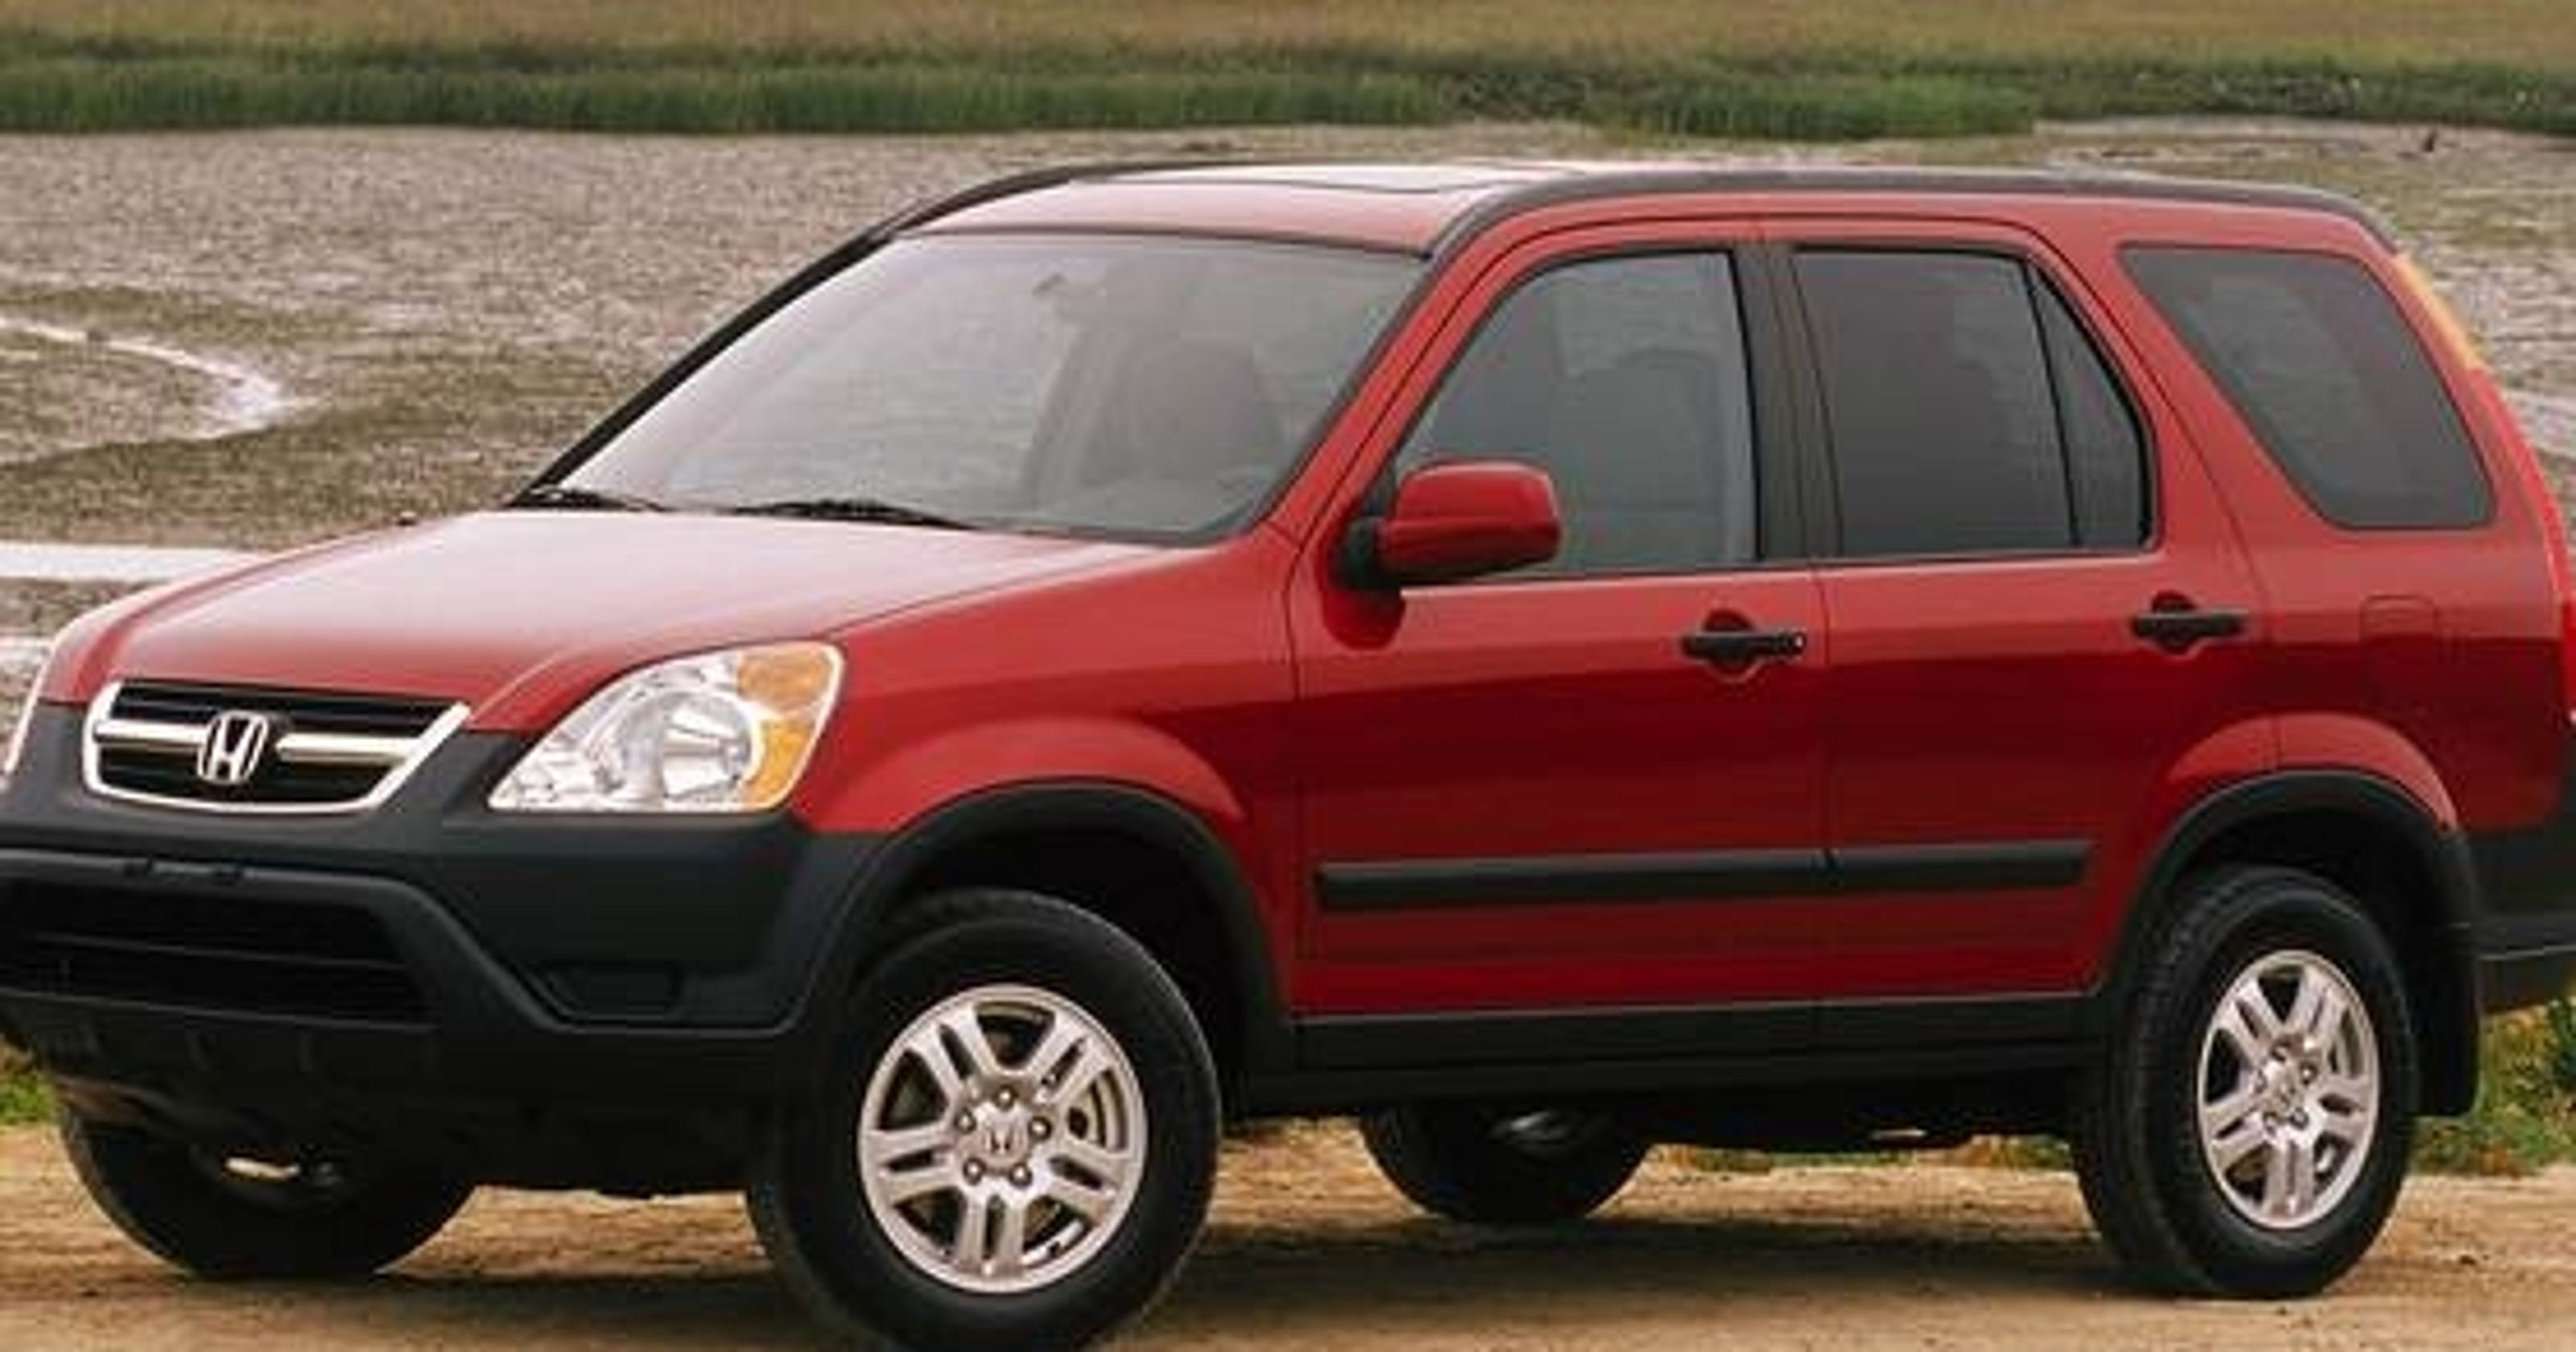 Honda Recalls 2002 2006 Cr V For Fire Risk 2004 Odyssey Wiring Harness Melted